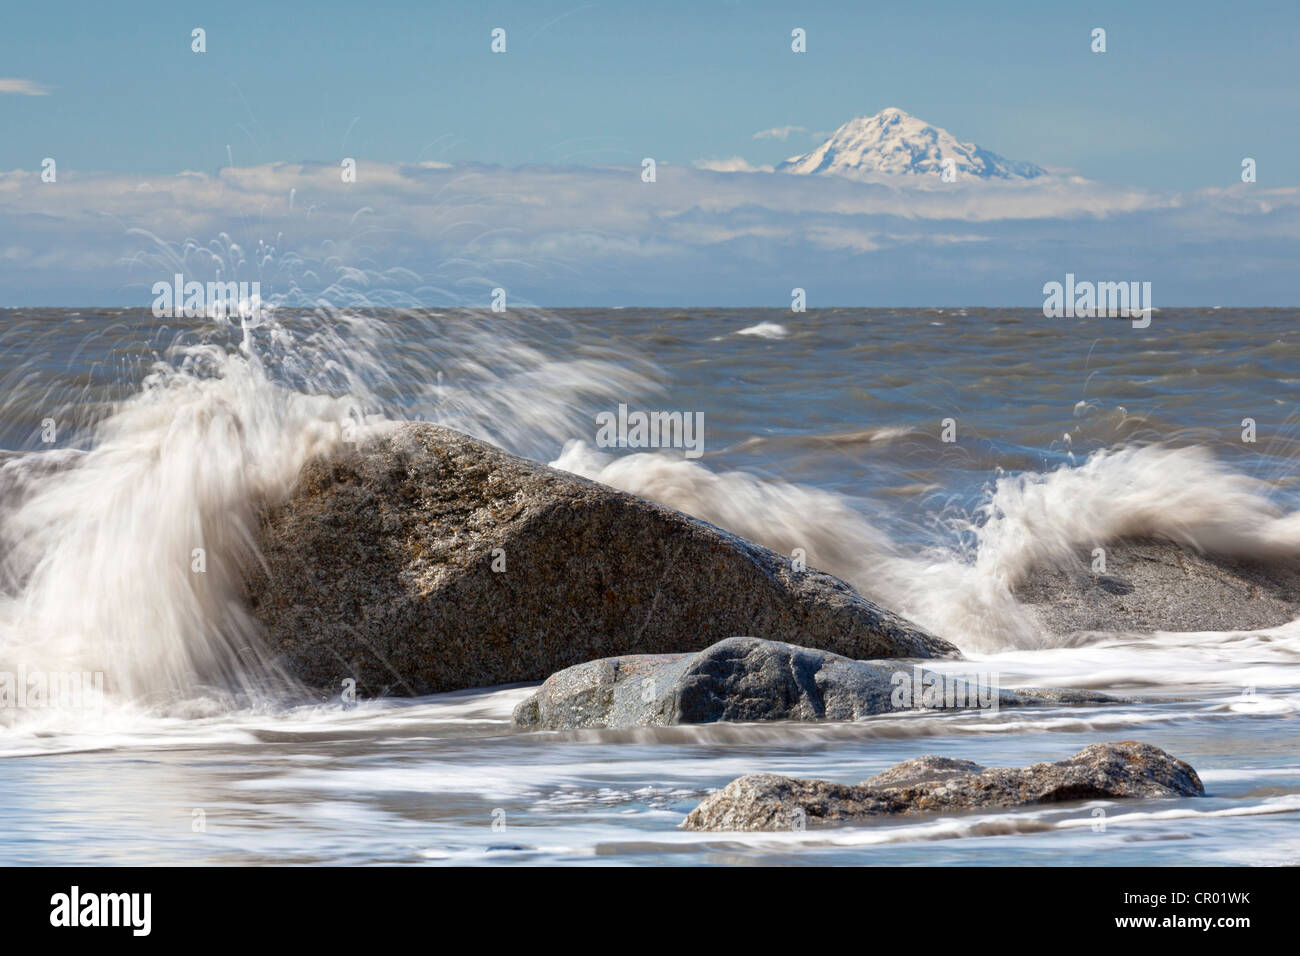 Surf zone on the beach in Kenai on the Kenai Peninsula with Mount Redoubt volcano in the Cook Inlet, Alaska, USA - Stock Image